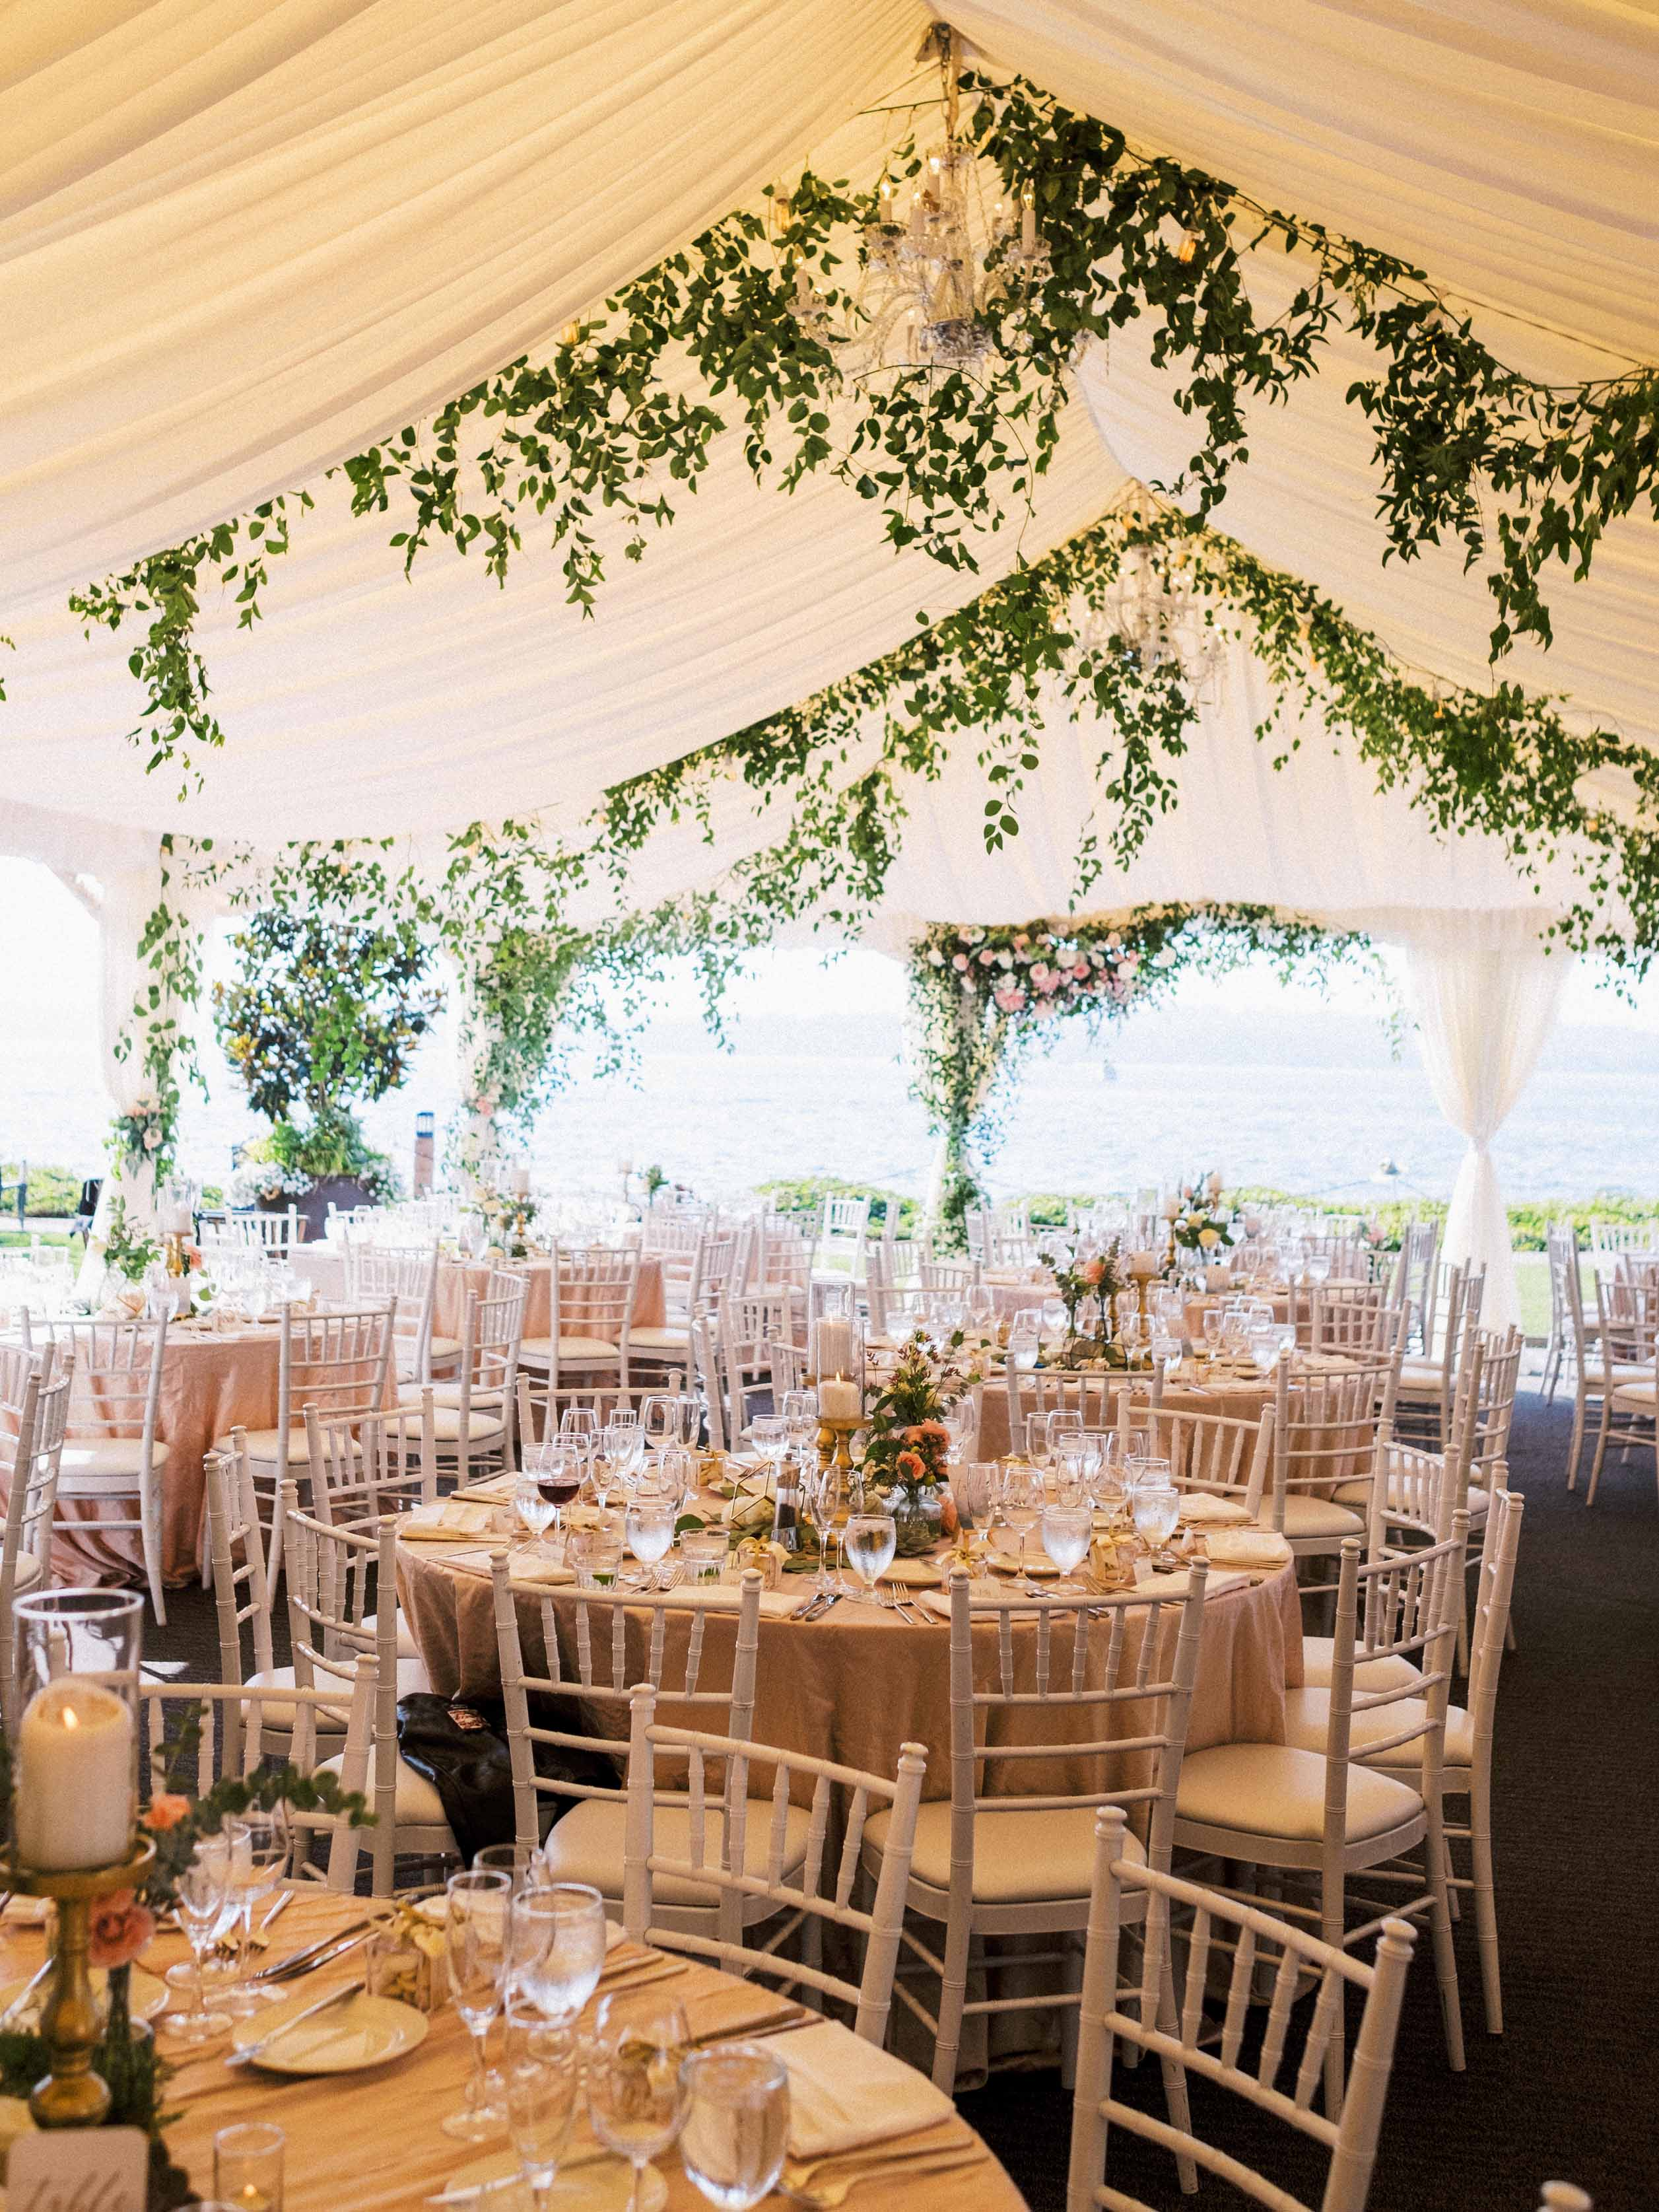 Wedding reception at the Woodmark Hotel with ceiling greenery, designed by Flora Nova Design Seattle